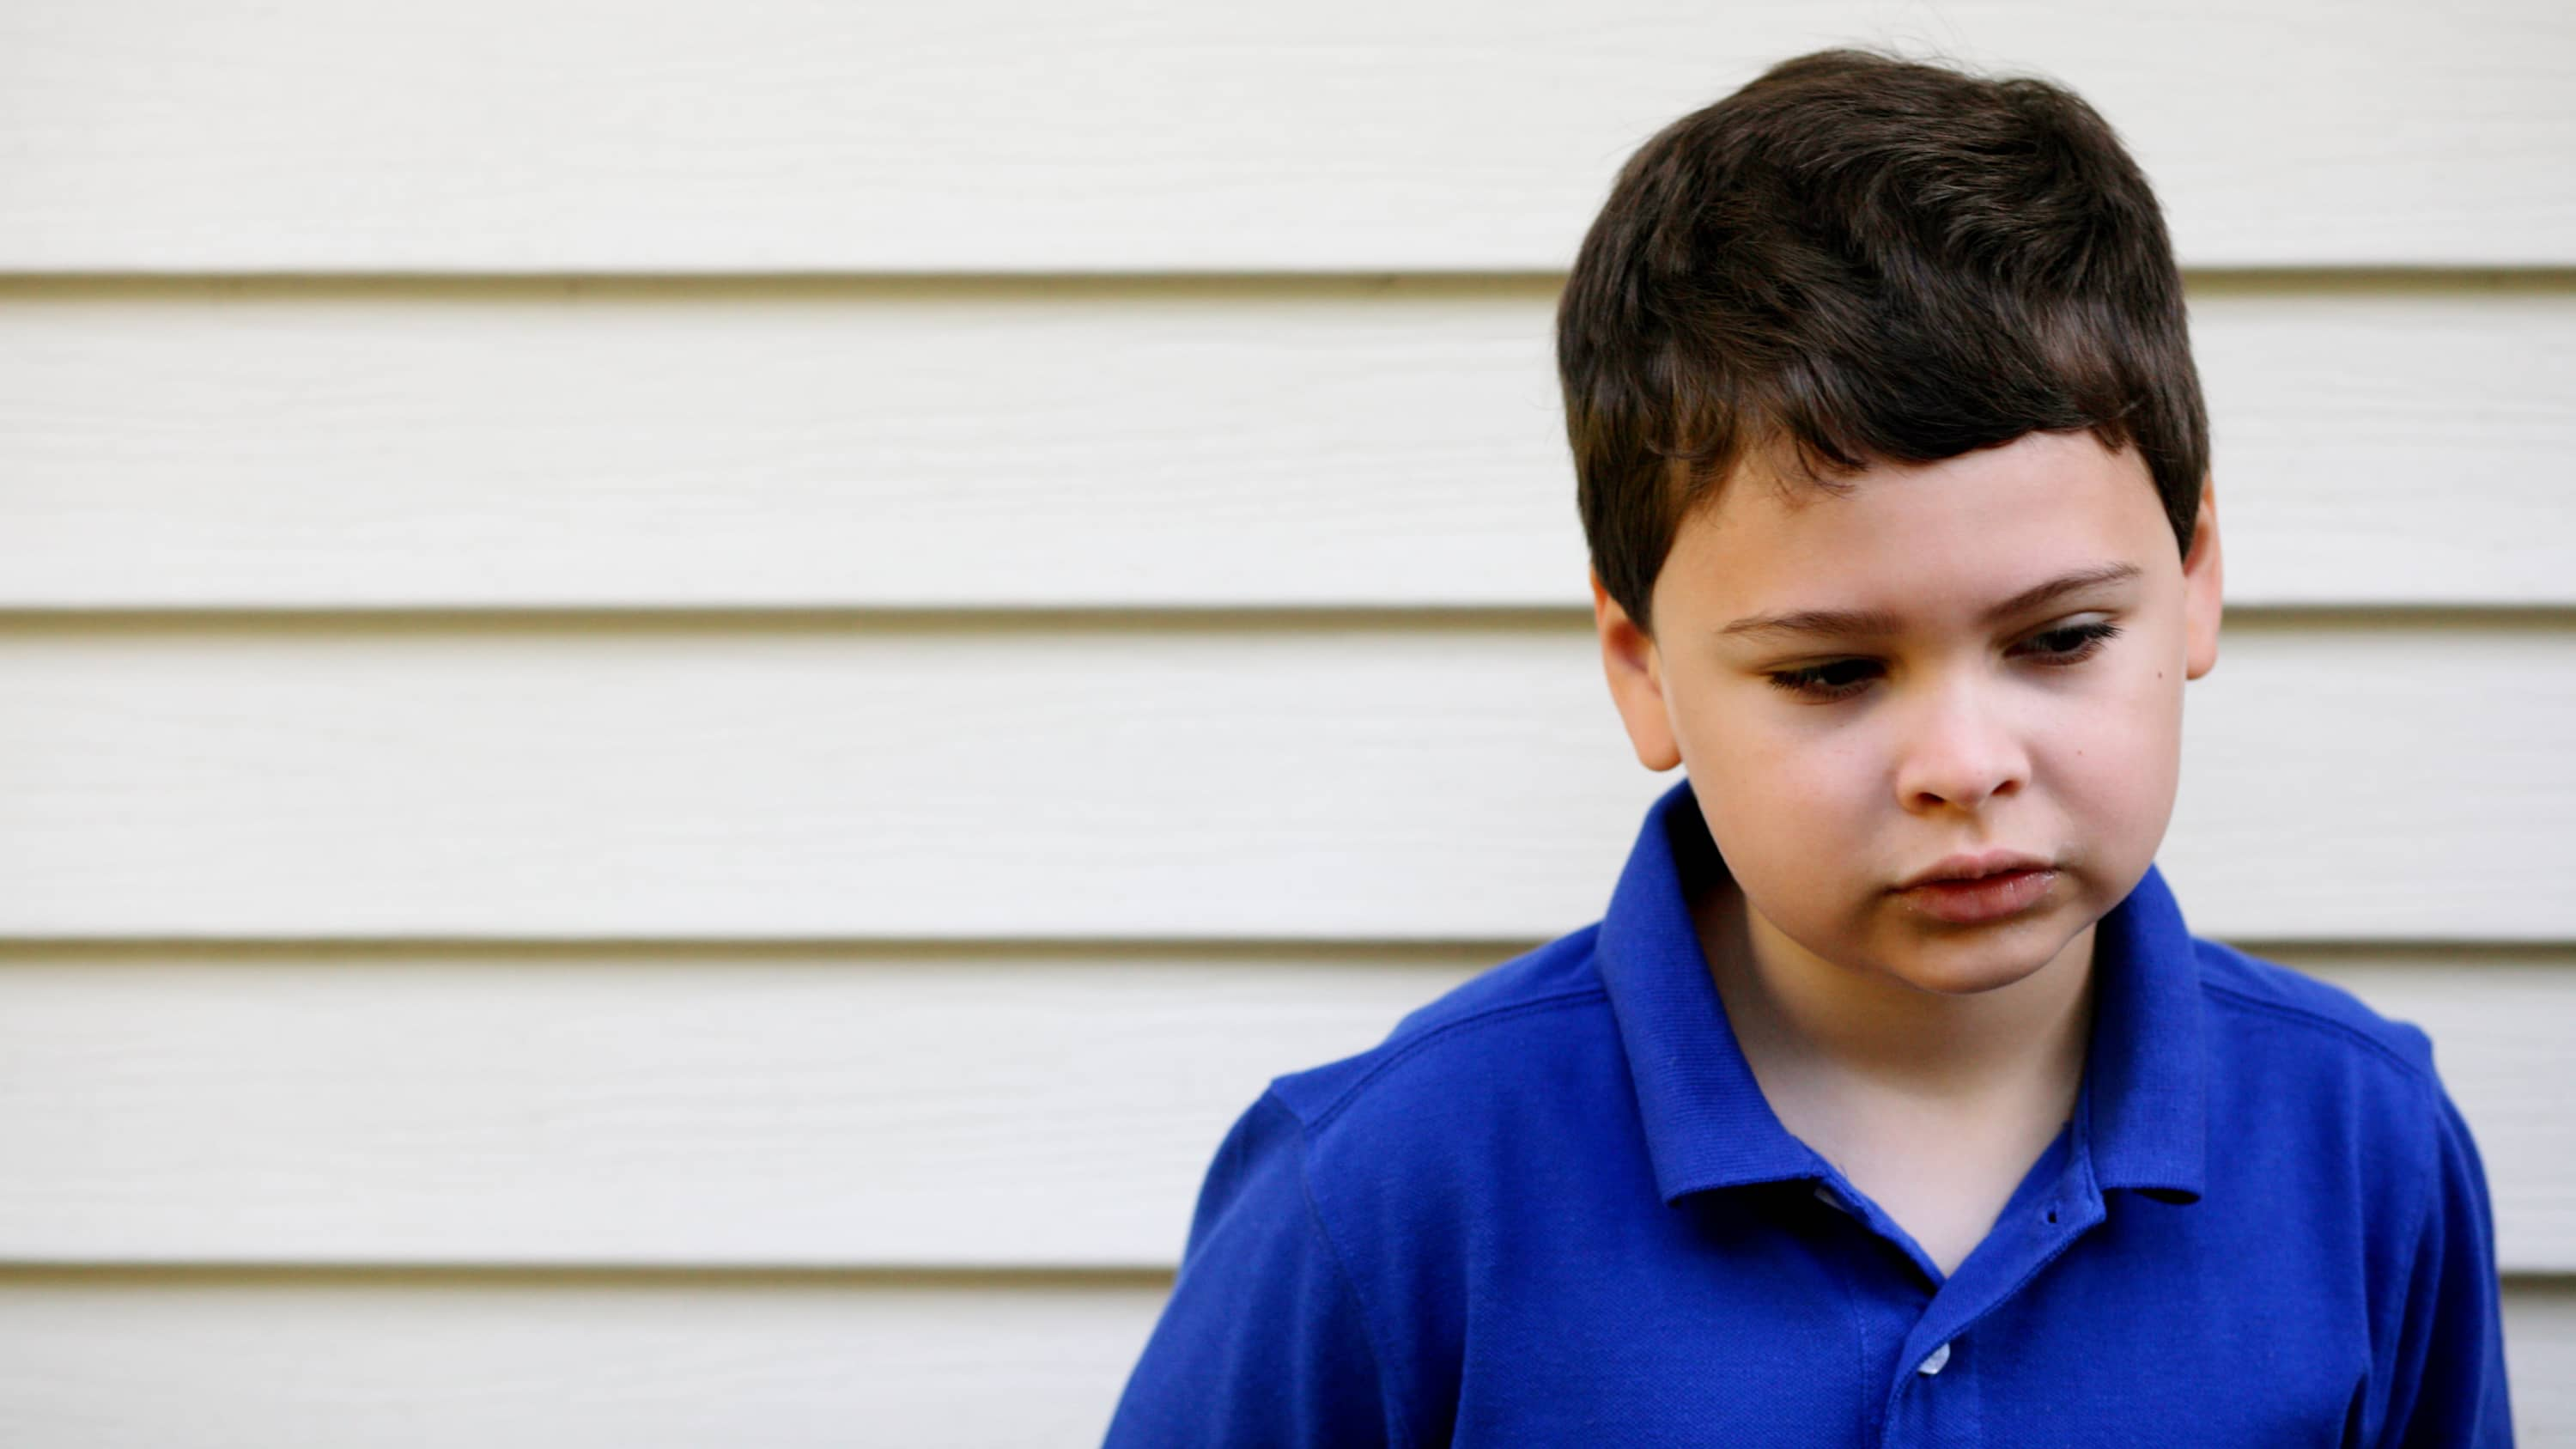 A young boy in a blue shirt who may have autism stands outside with a serious look on his face.